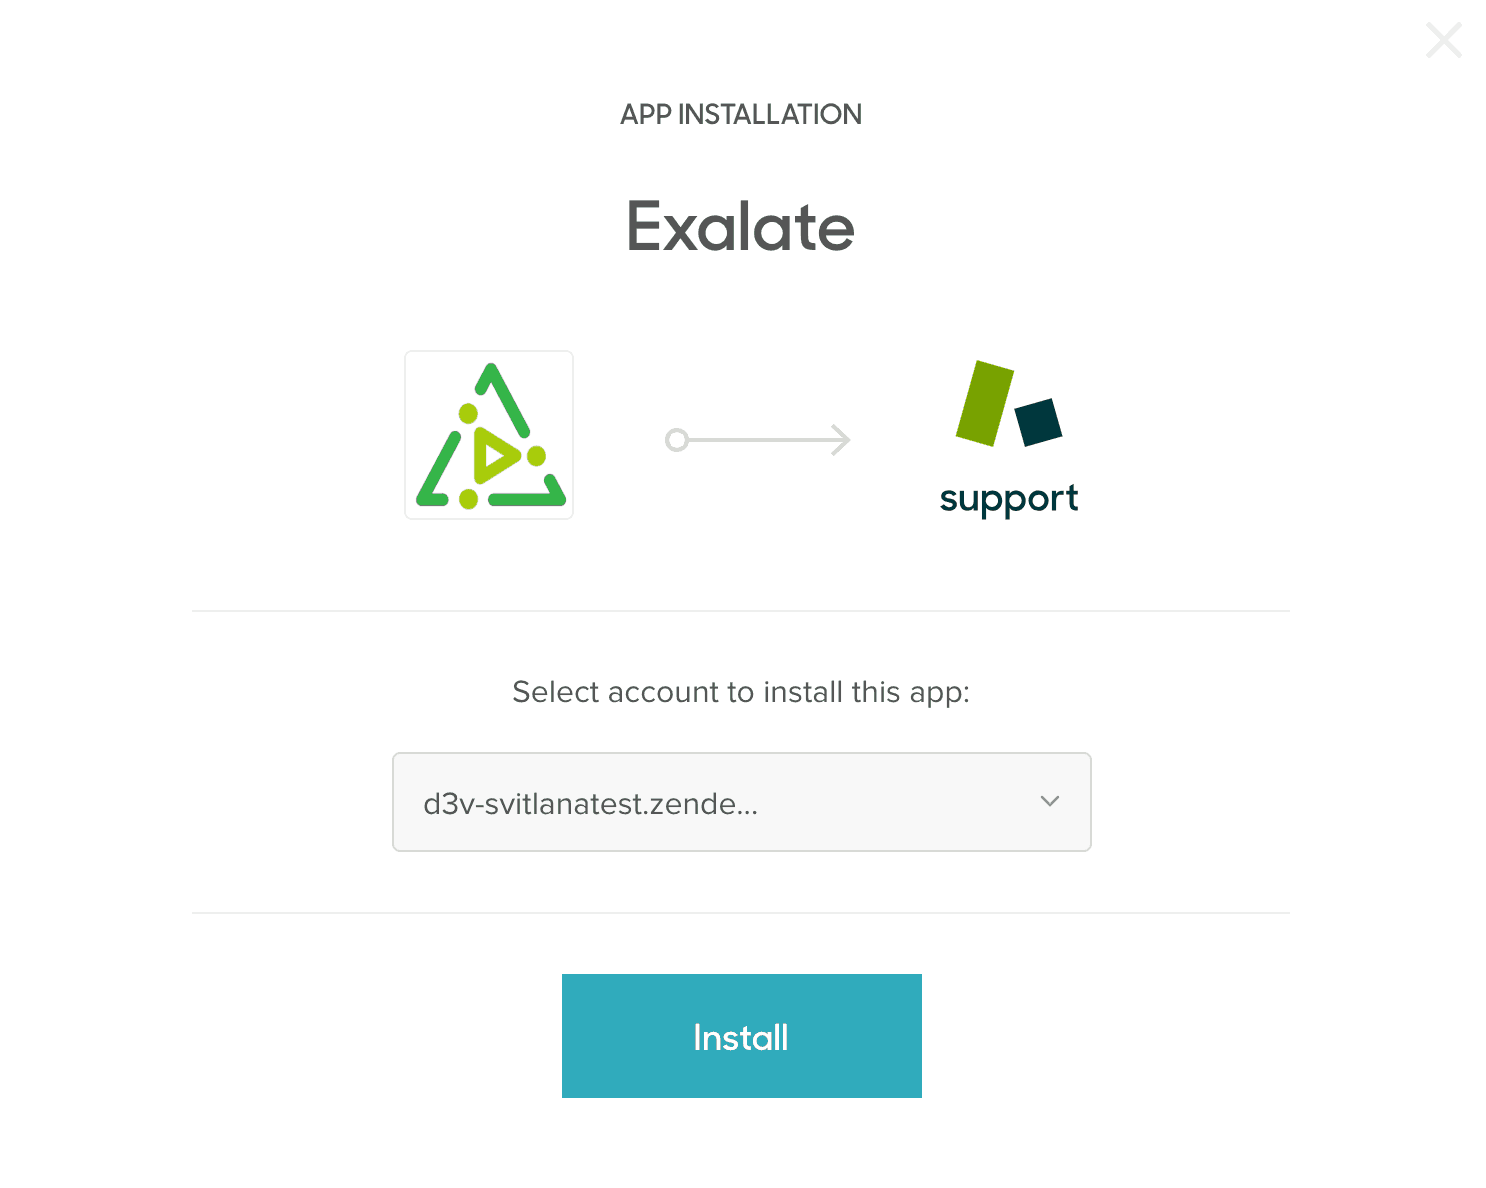 Connect Zendesk Exalate app installation